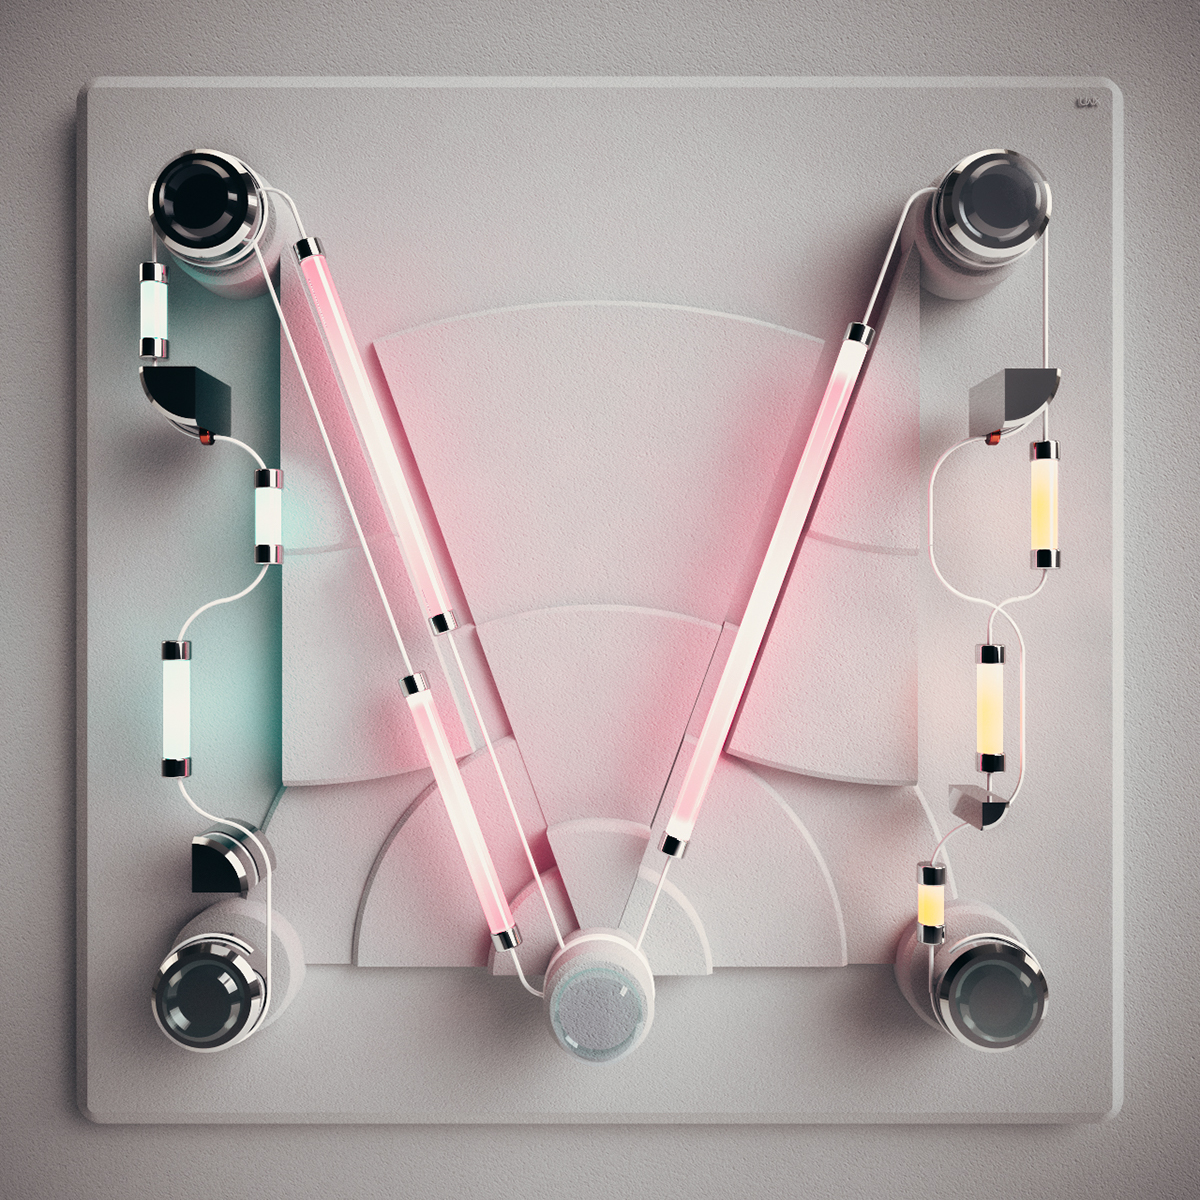 type,3DType,signs,neon,geometry,math,Trigonometry,36daysoftype,poster,frame,letter